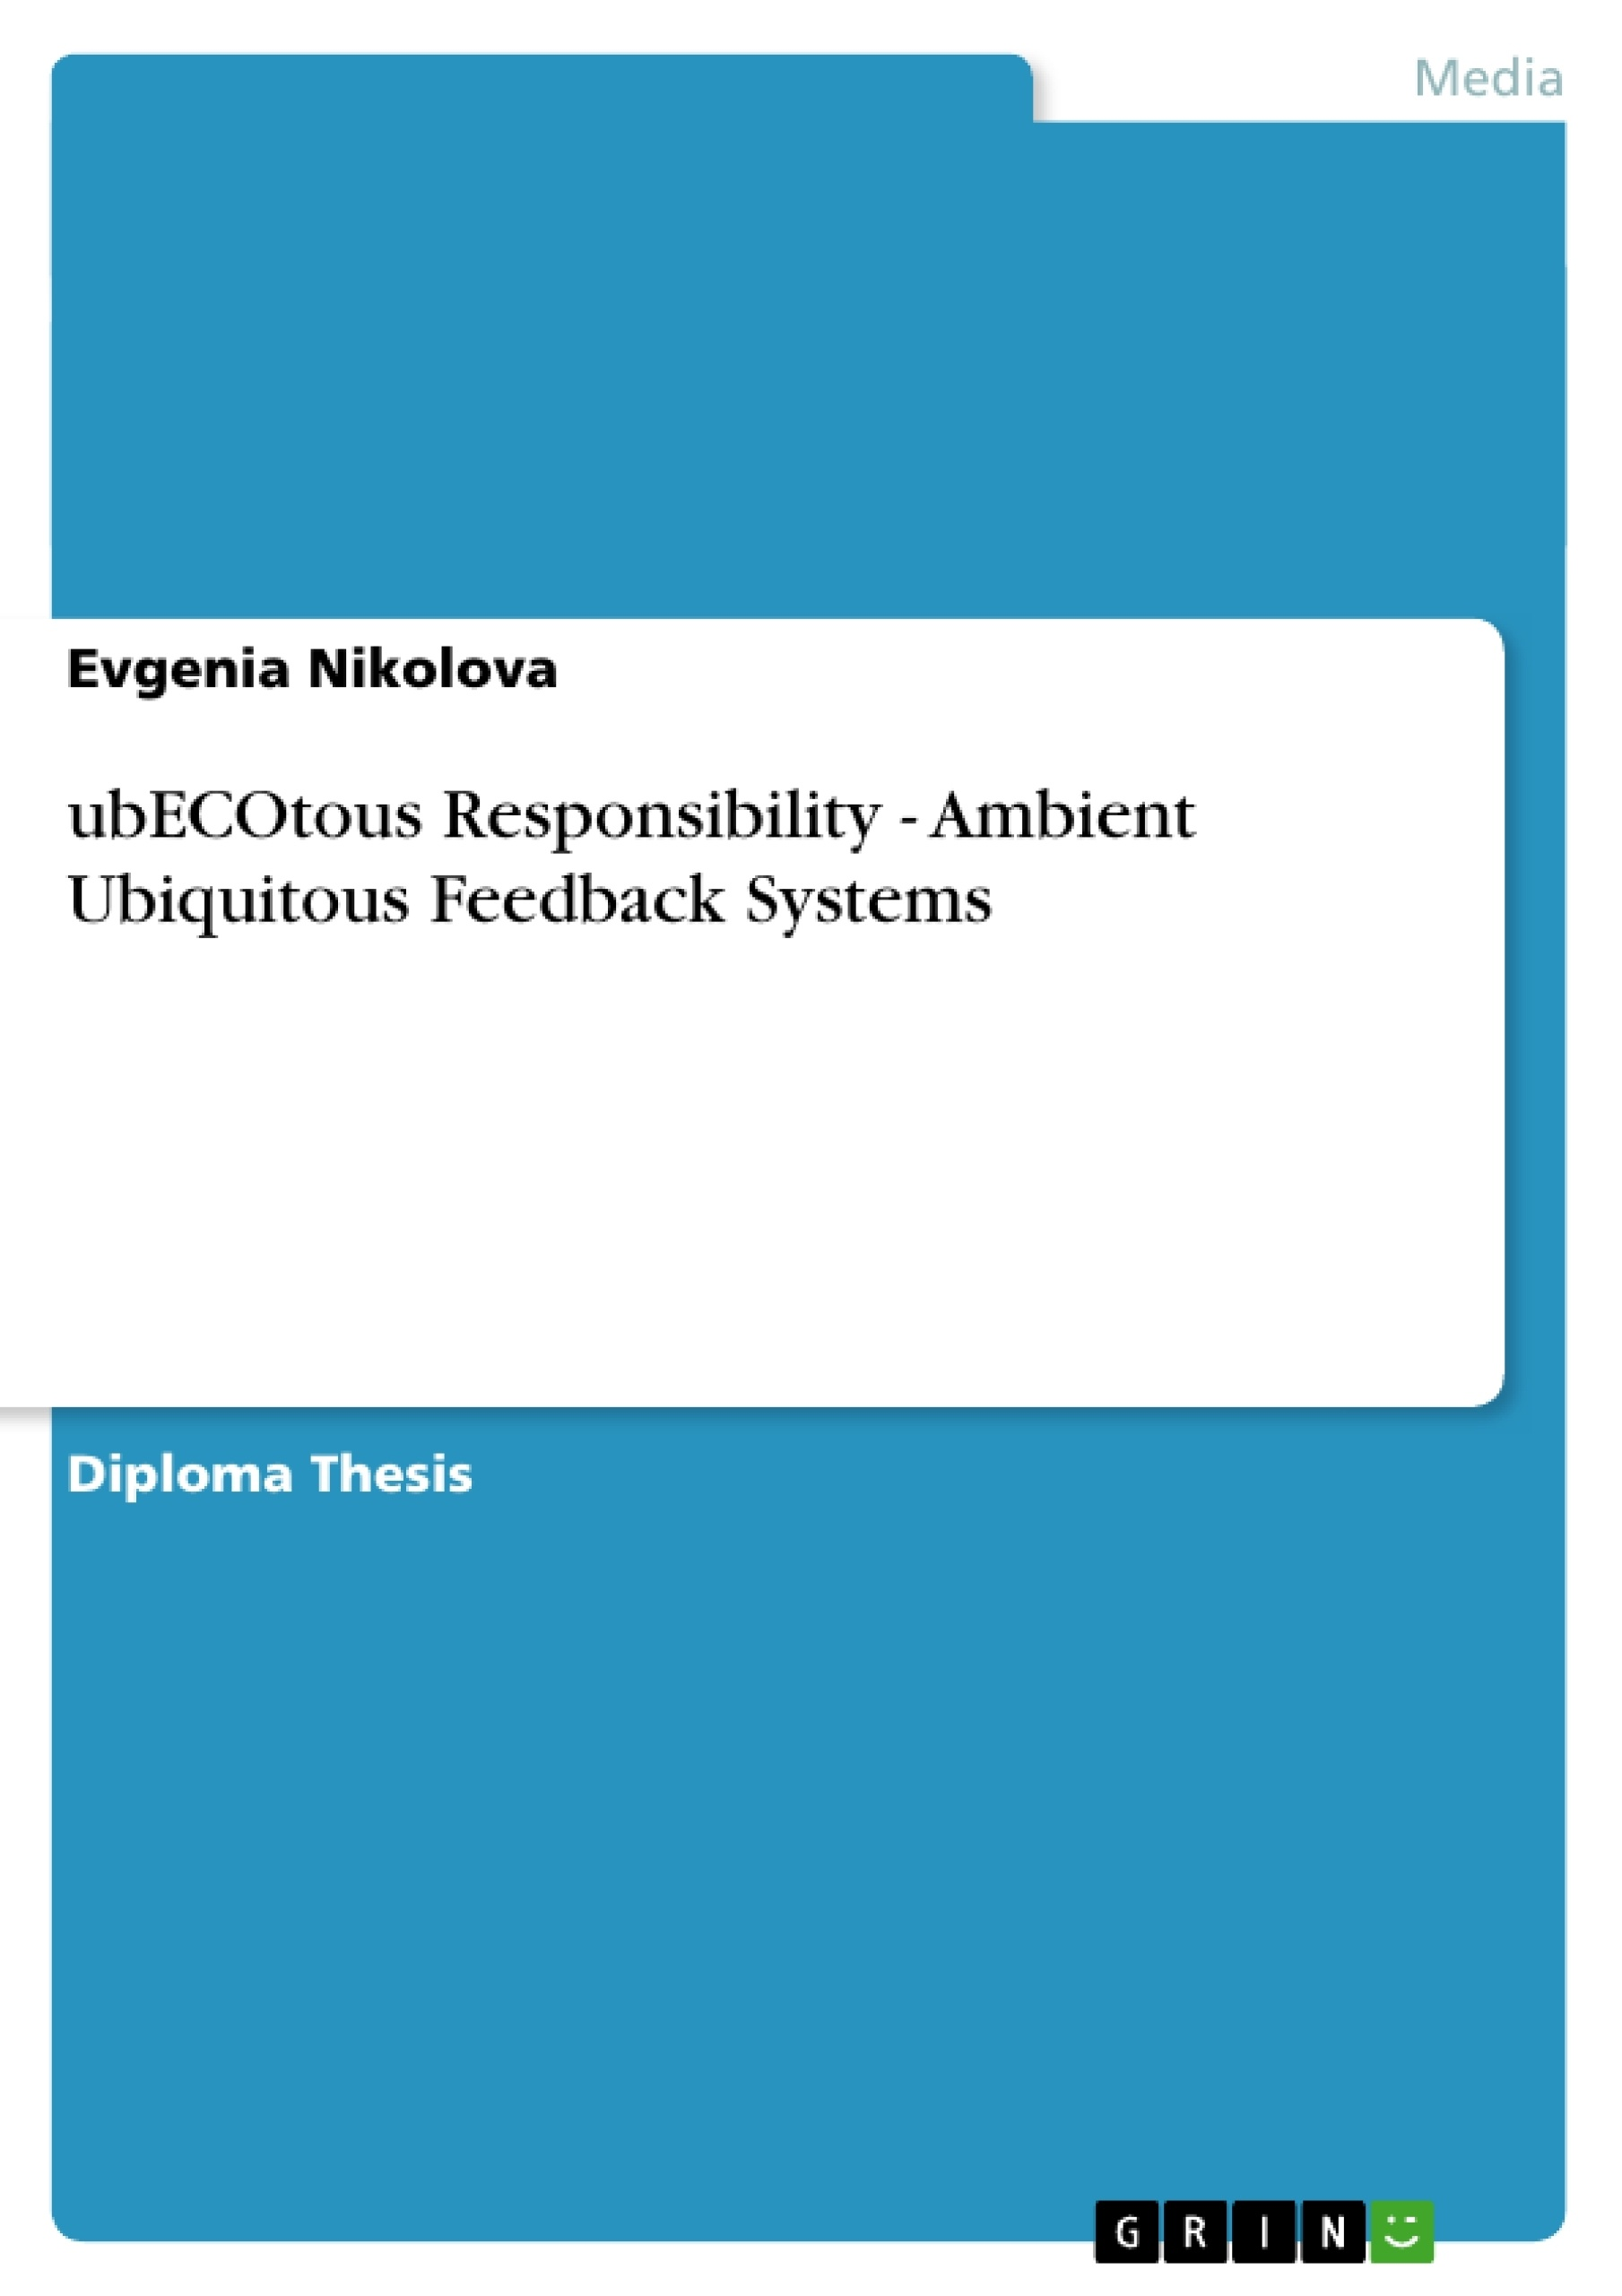 Title: ubECOtous Responsibility - Ambient Ubiquitous Feedback Systems